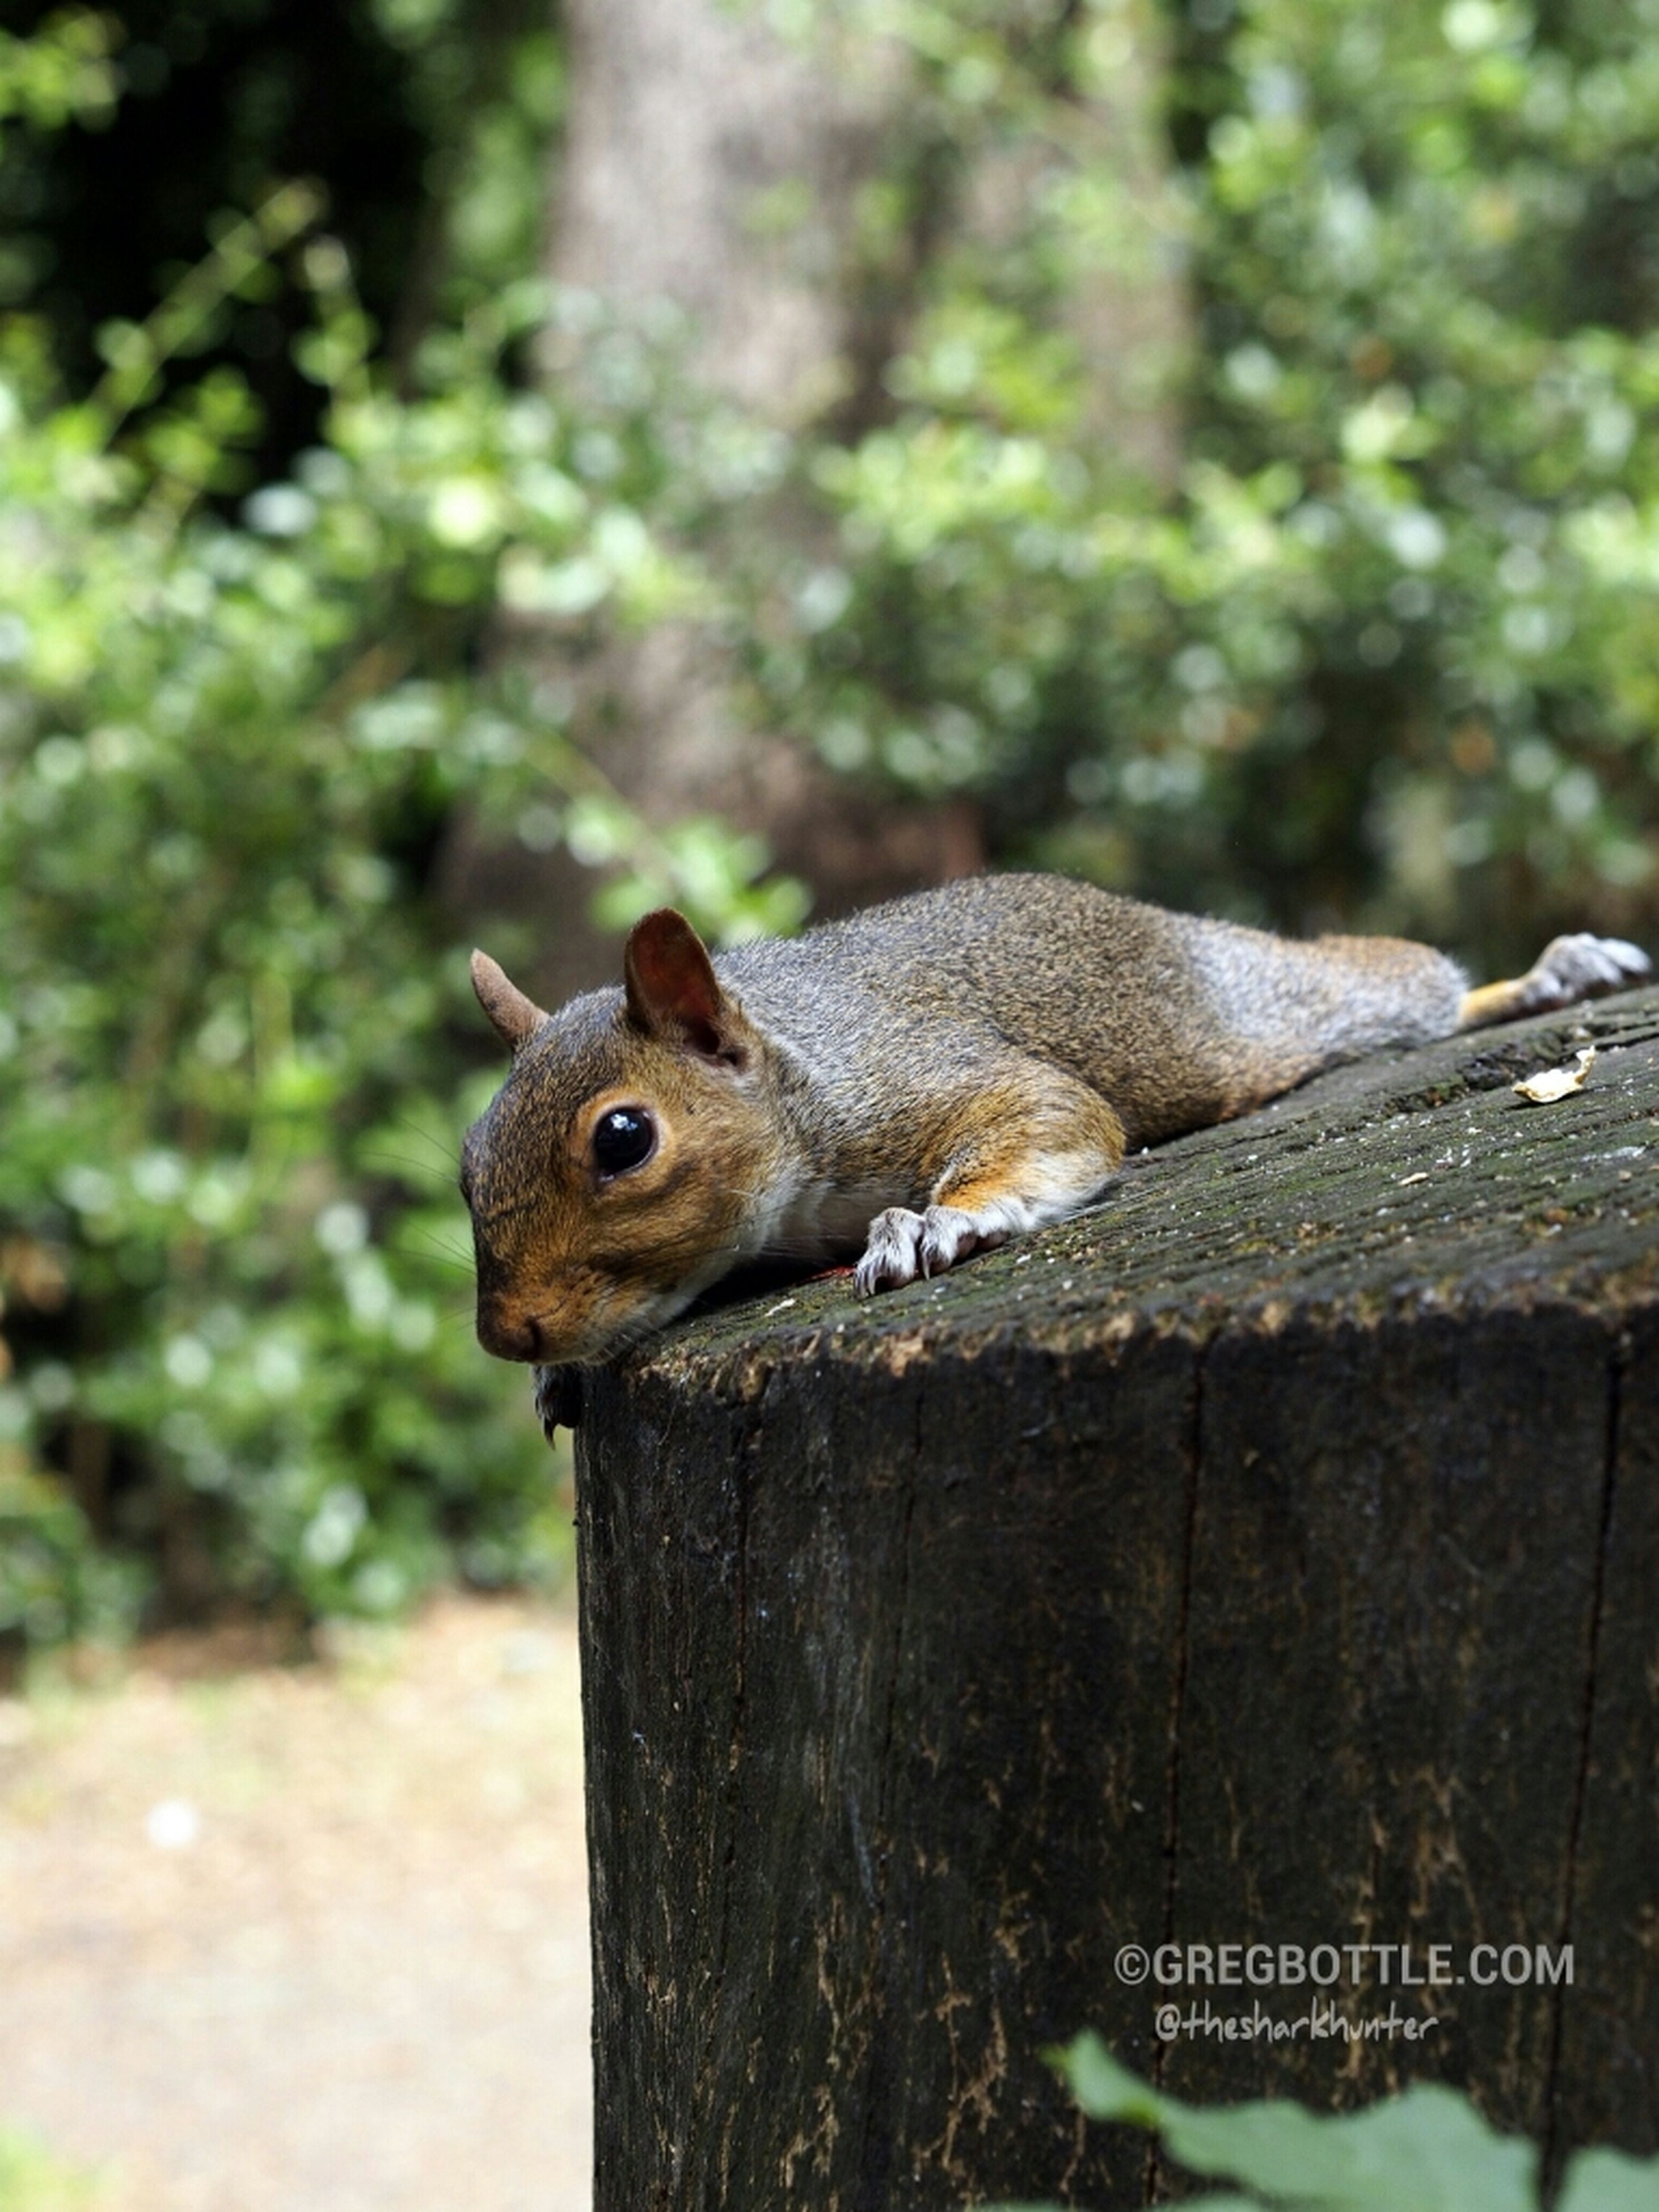 animal themes, one animal, animals in the wild, focus on foreground, wildlife, tree, wood - material, squirrel, tree trunk, close-up, bird, day, nature, outdoors, perching, side view, branch, no people, wood, full length